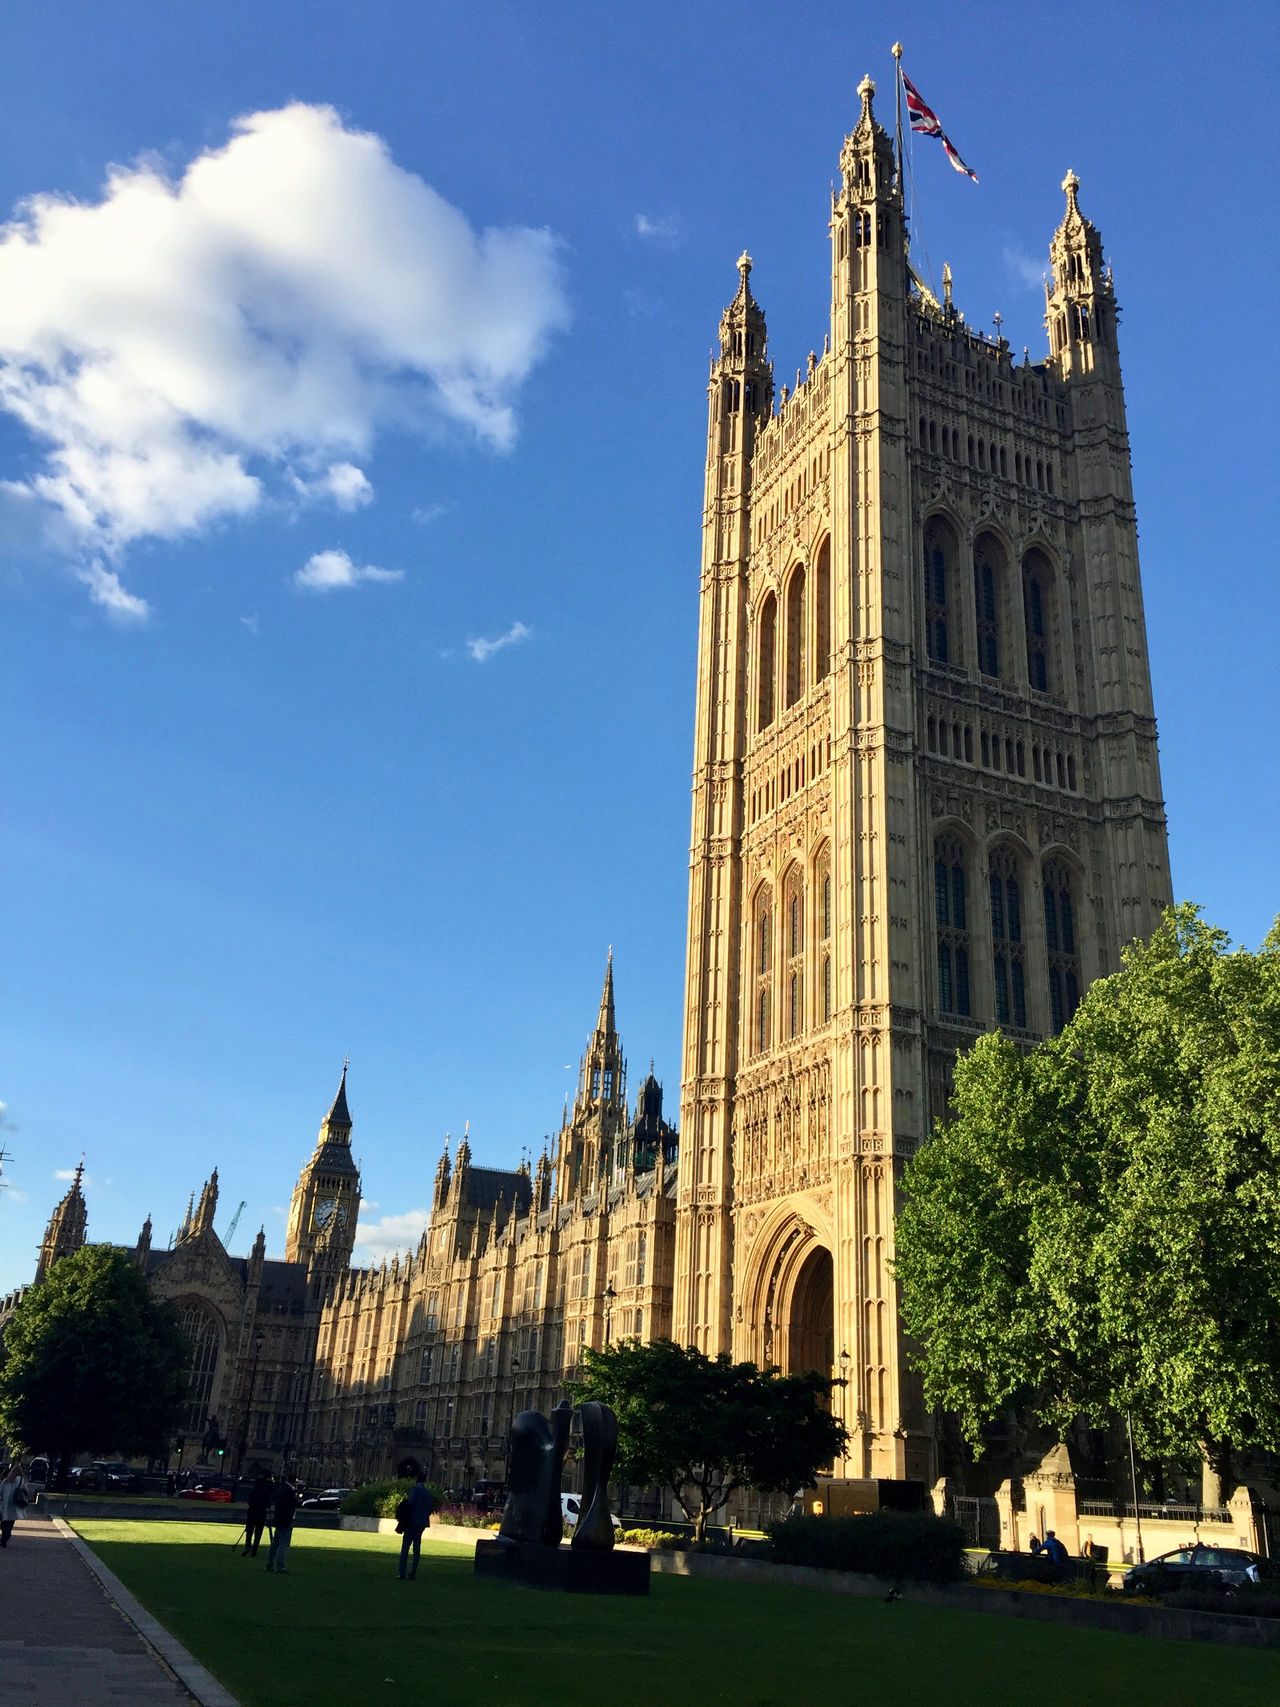 Architecture Building Exterior Built Structure City Clock Face Clock Tower Cultures Day Government Houses Of Parliament Large Group Of People Outdoors People Sky Travel Travel Destinations